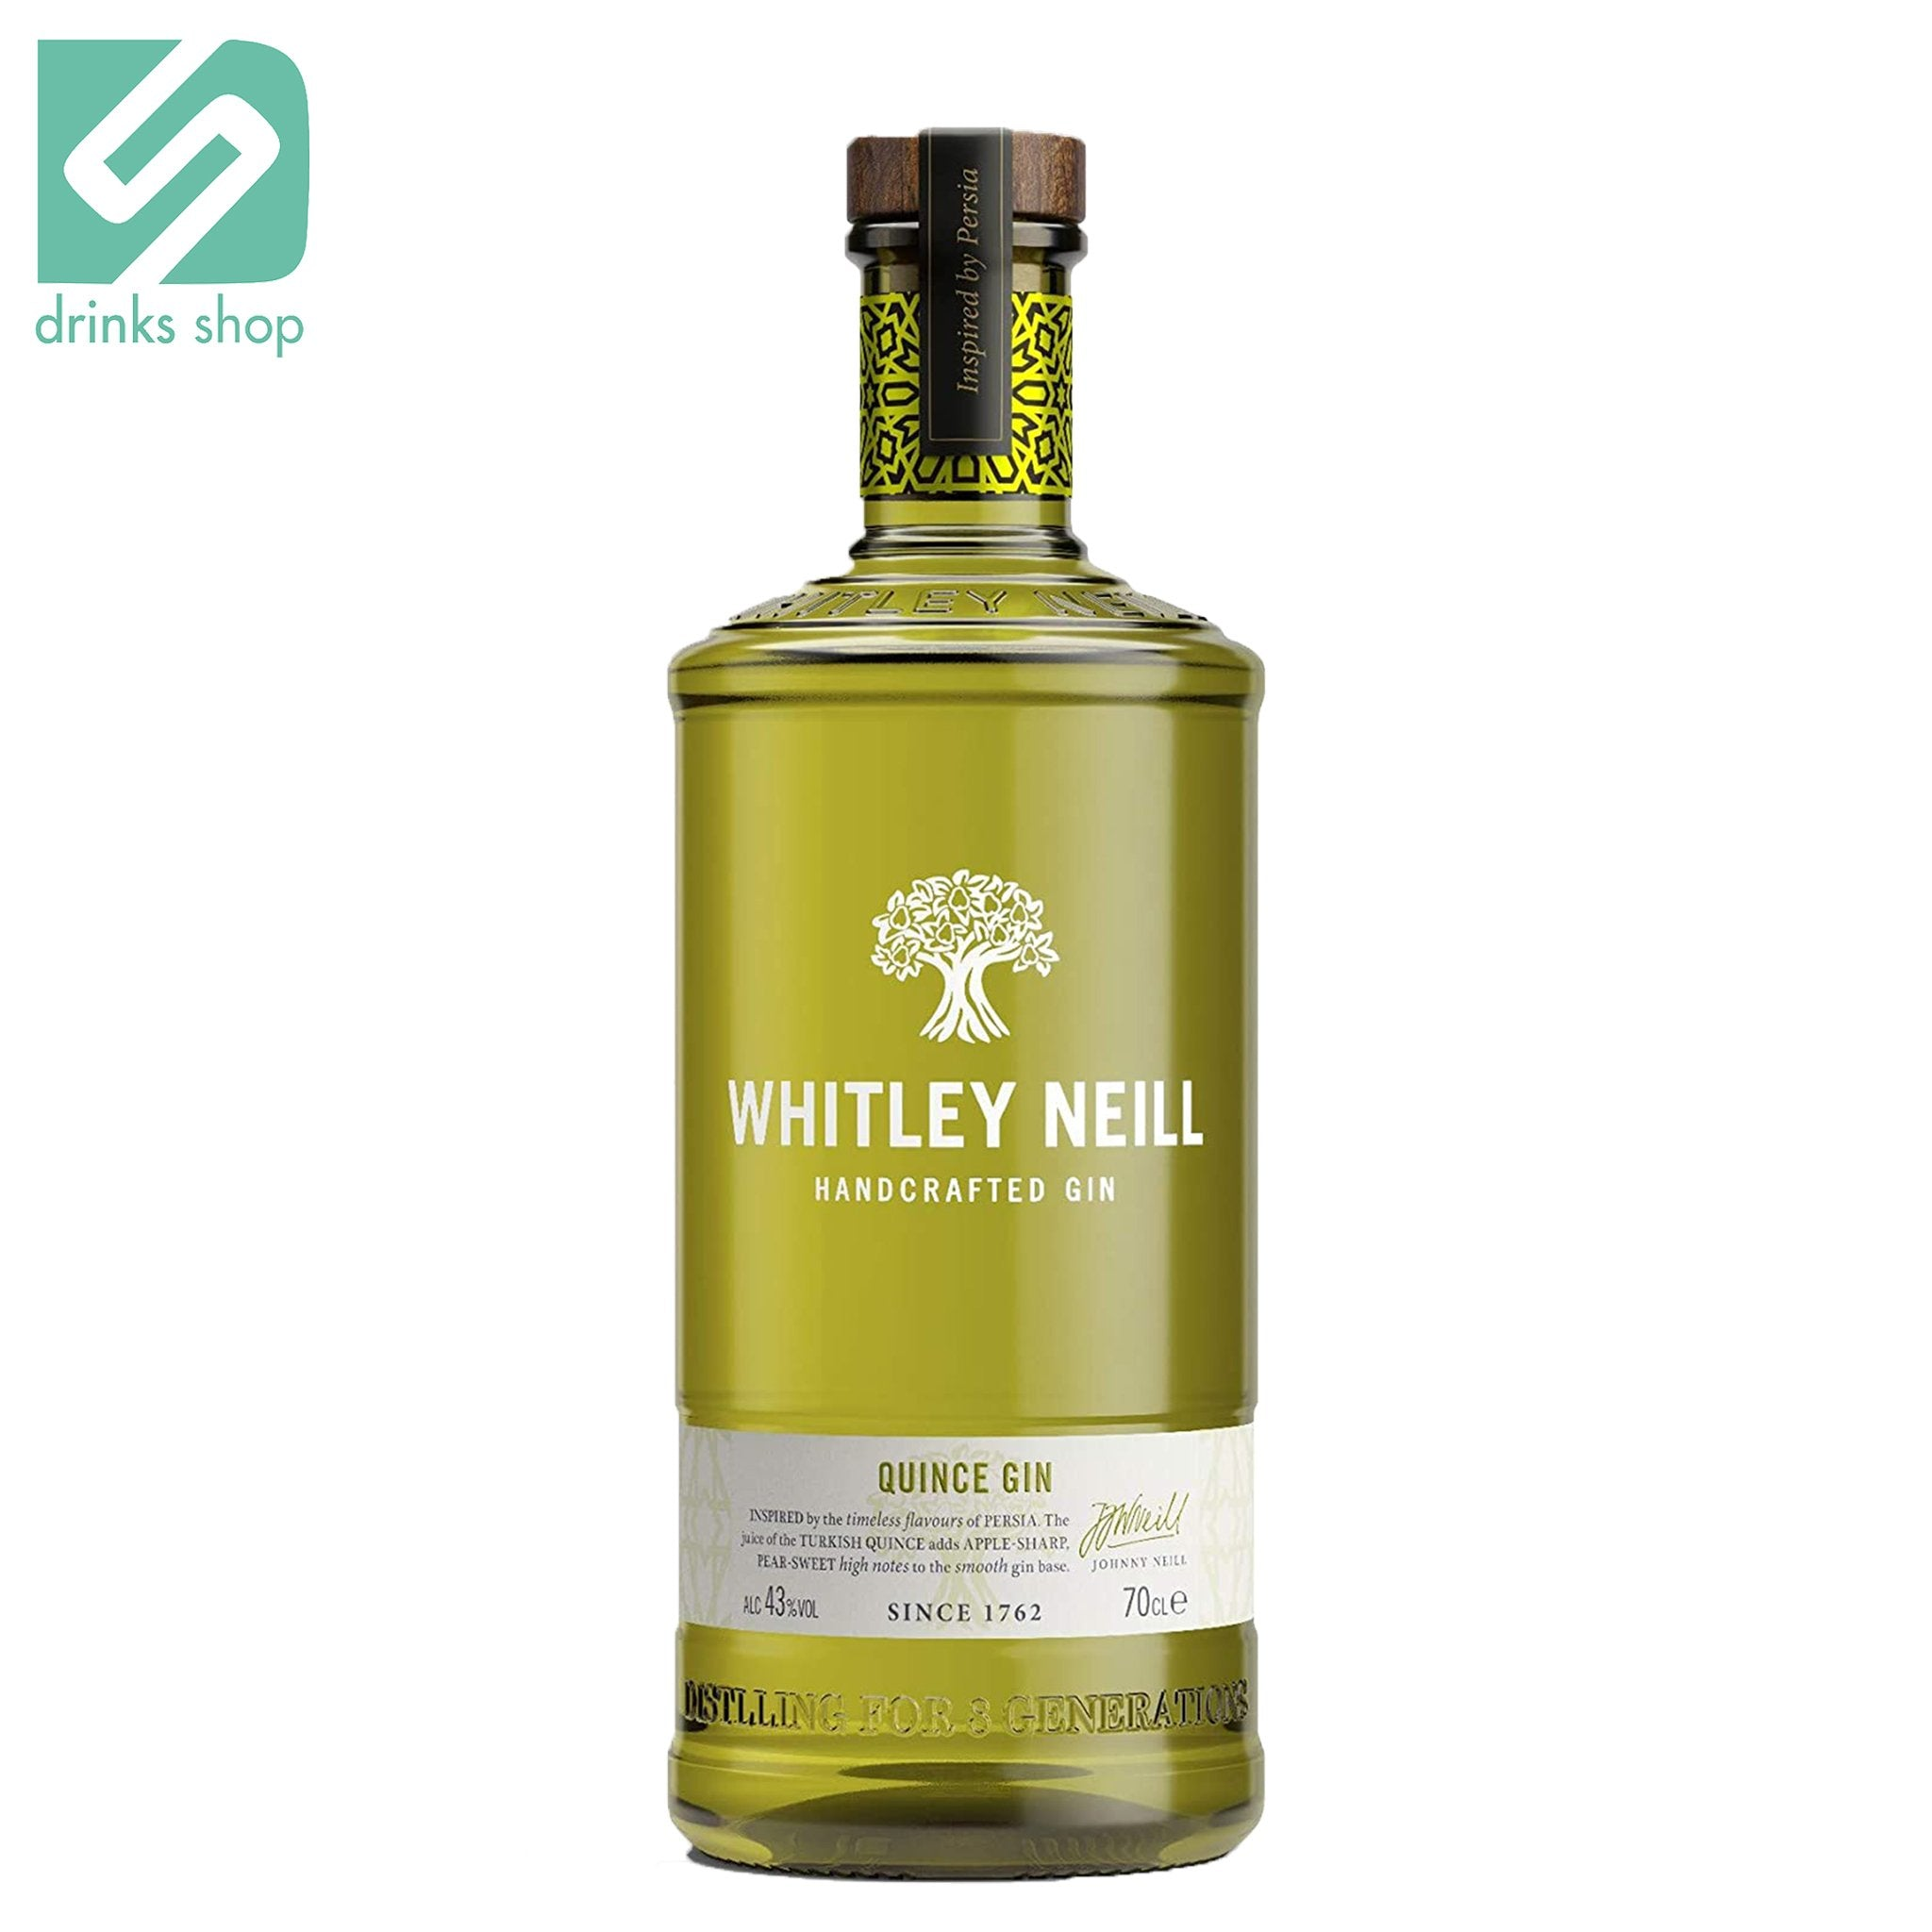 Whitley Neill Quince Gin 70cl, Gin - Image 1